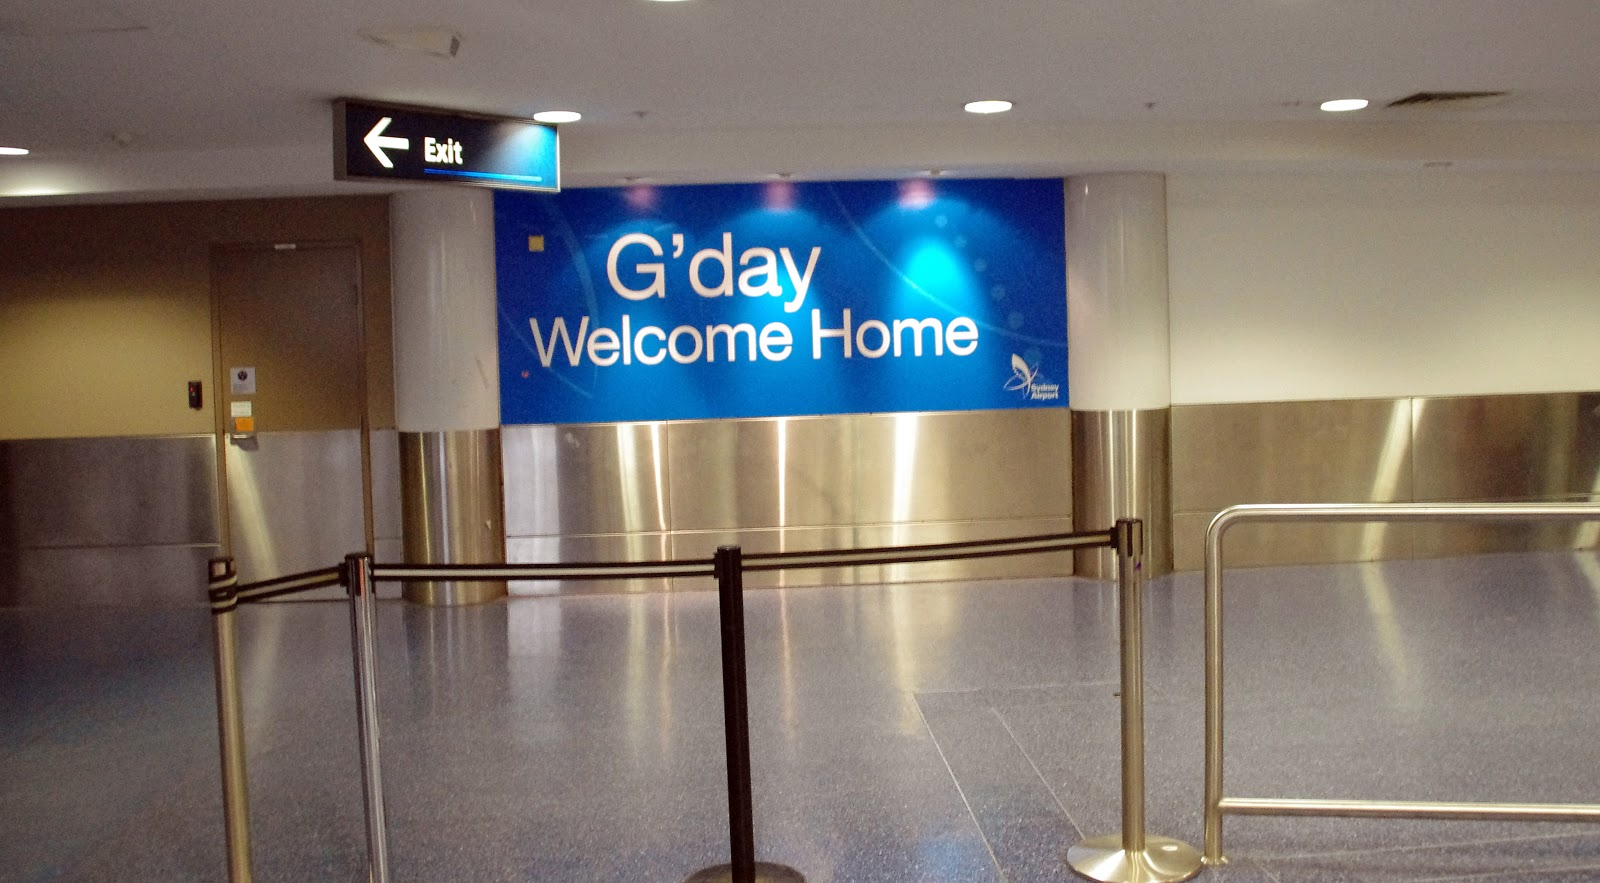 G'day welcome home at Sydney Airport